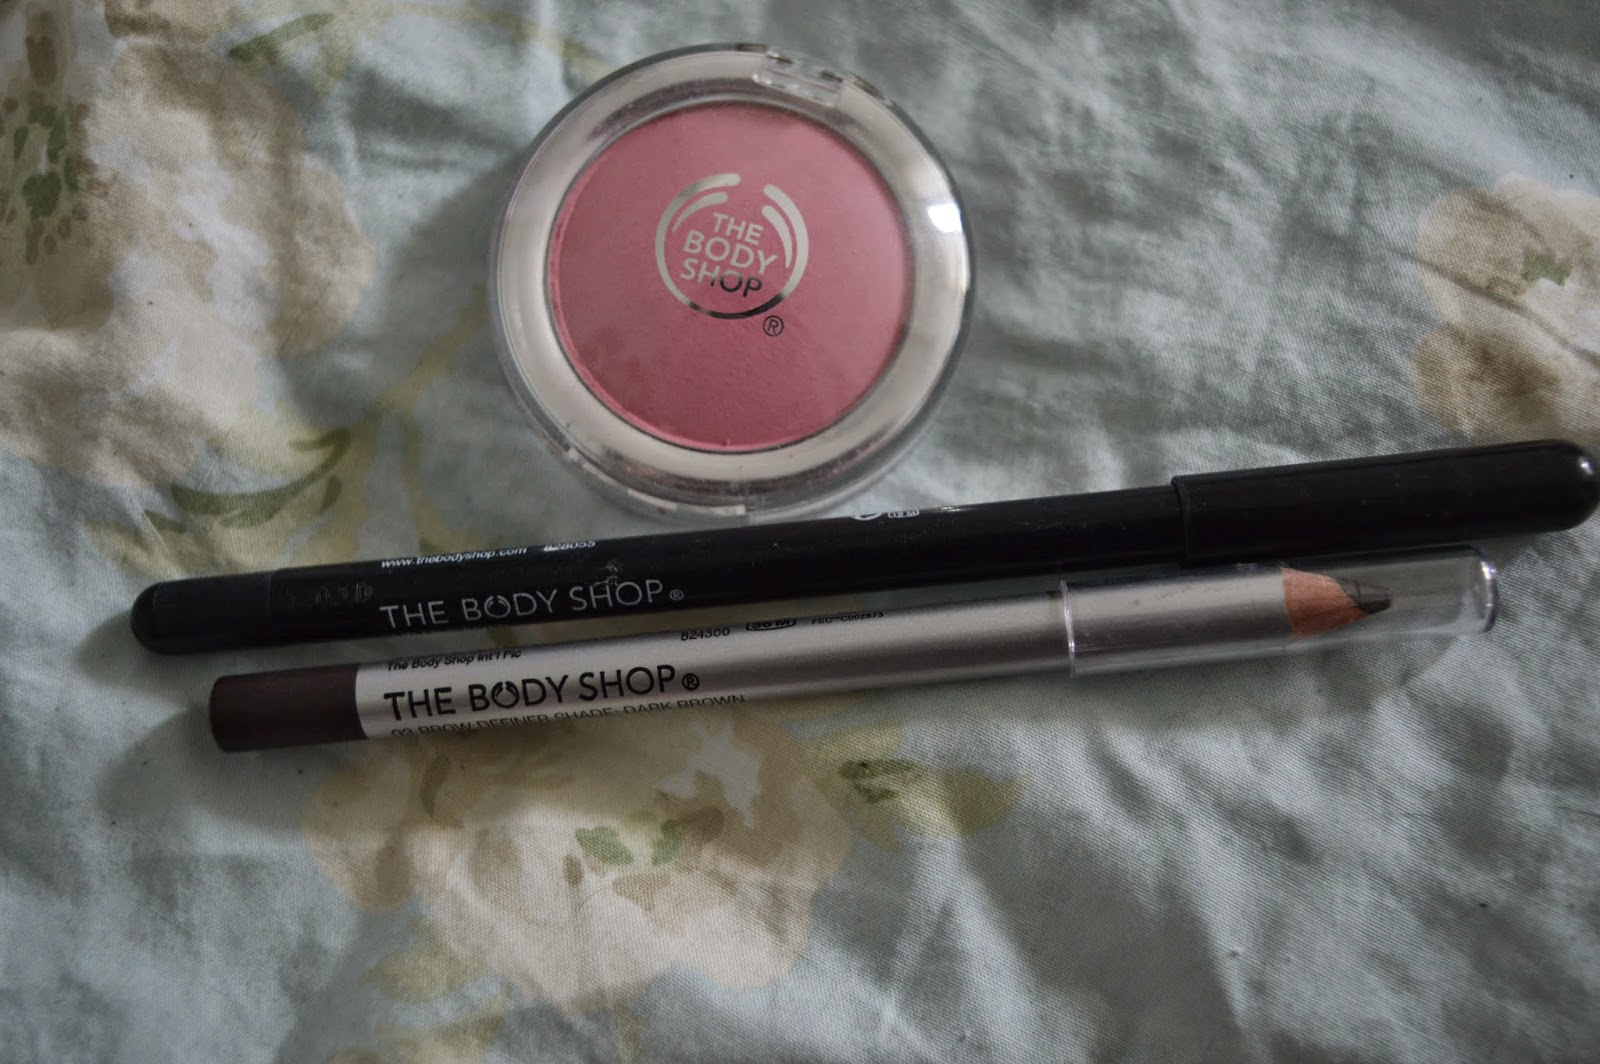 Bodyshop makeup review